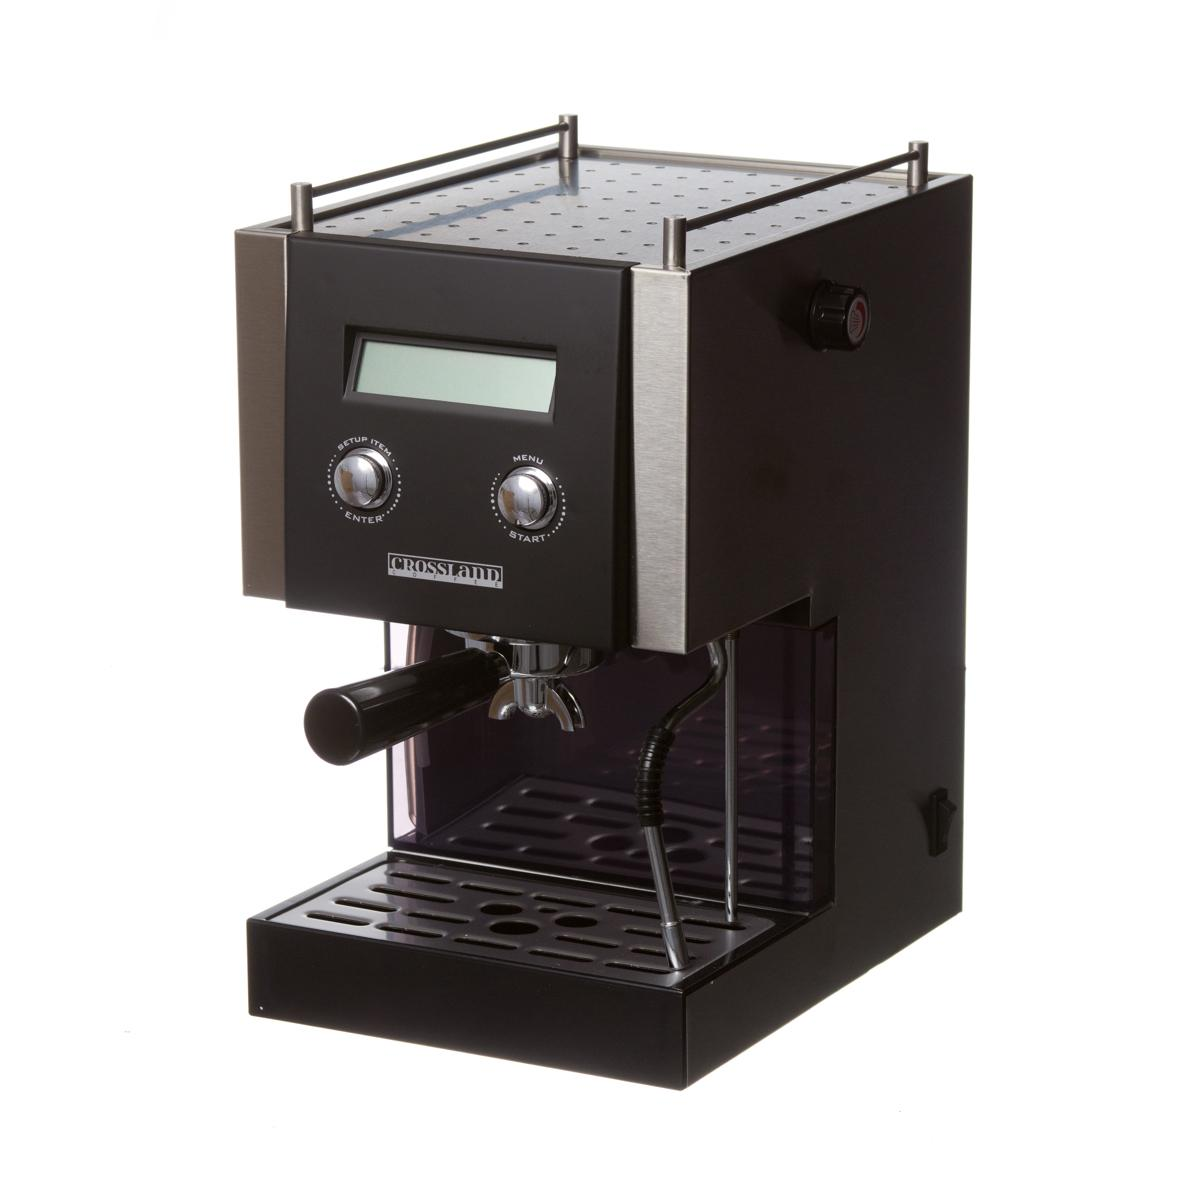 The Crossland CC1, photo courtesy of Seattle Coffee Gear, click through for their full review.